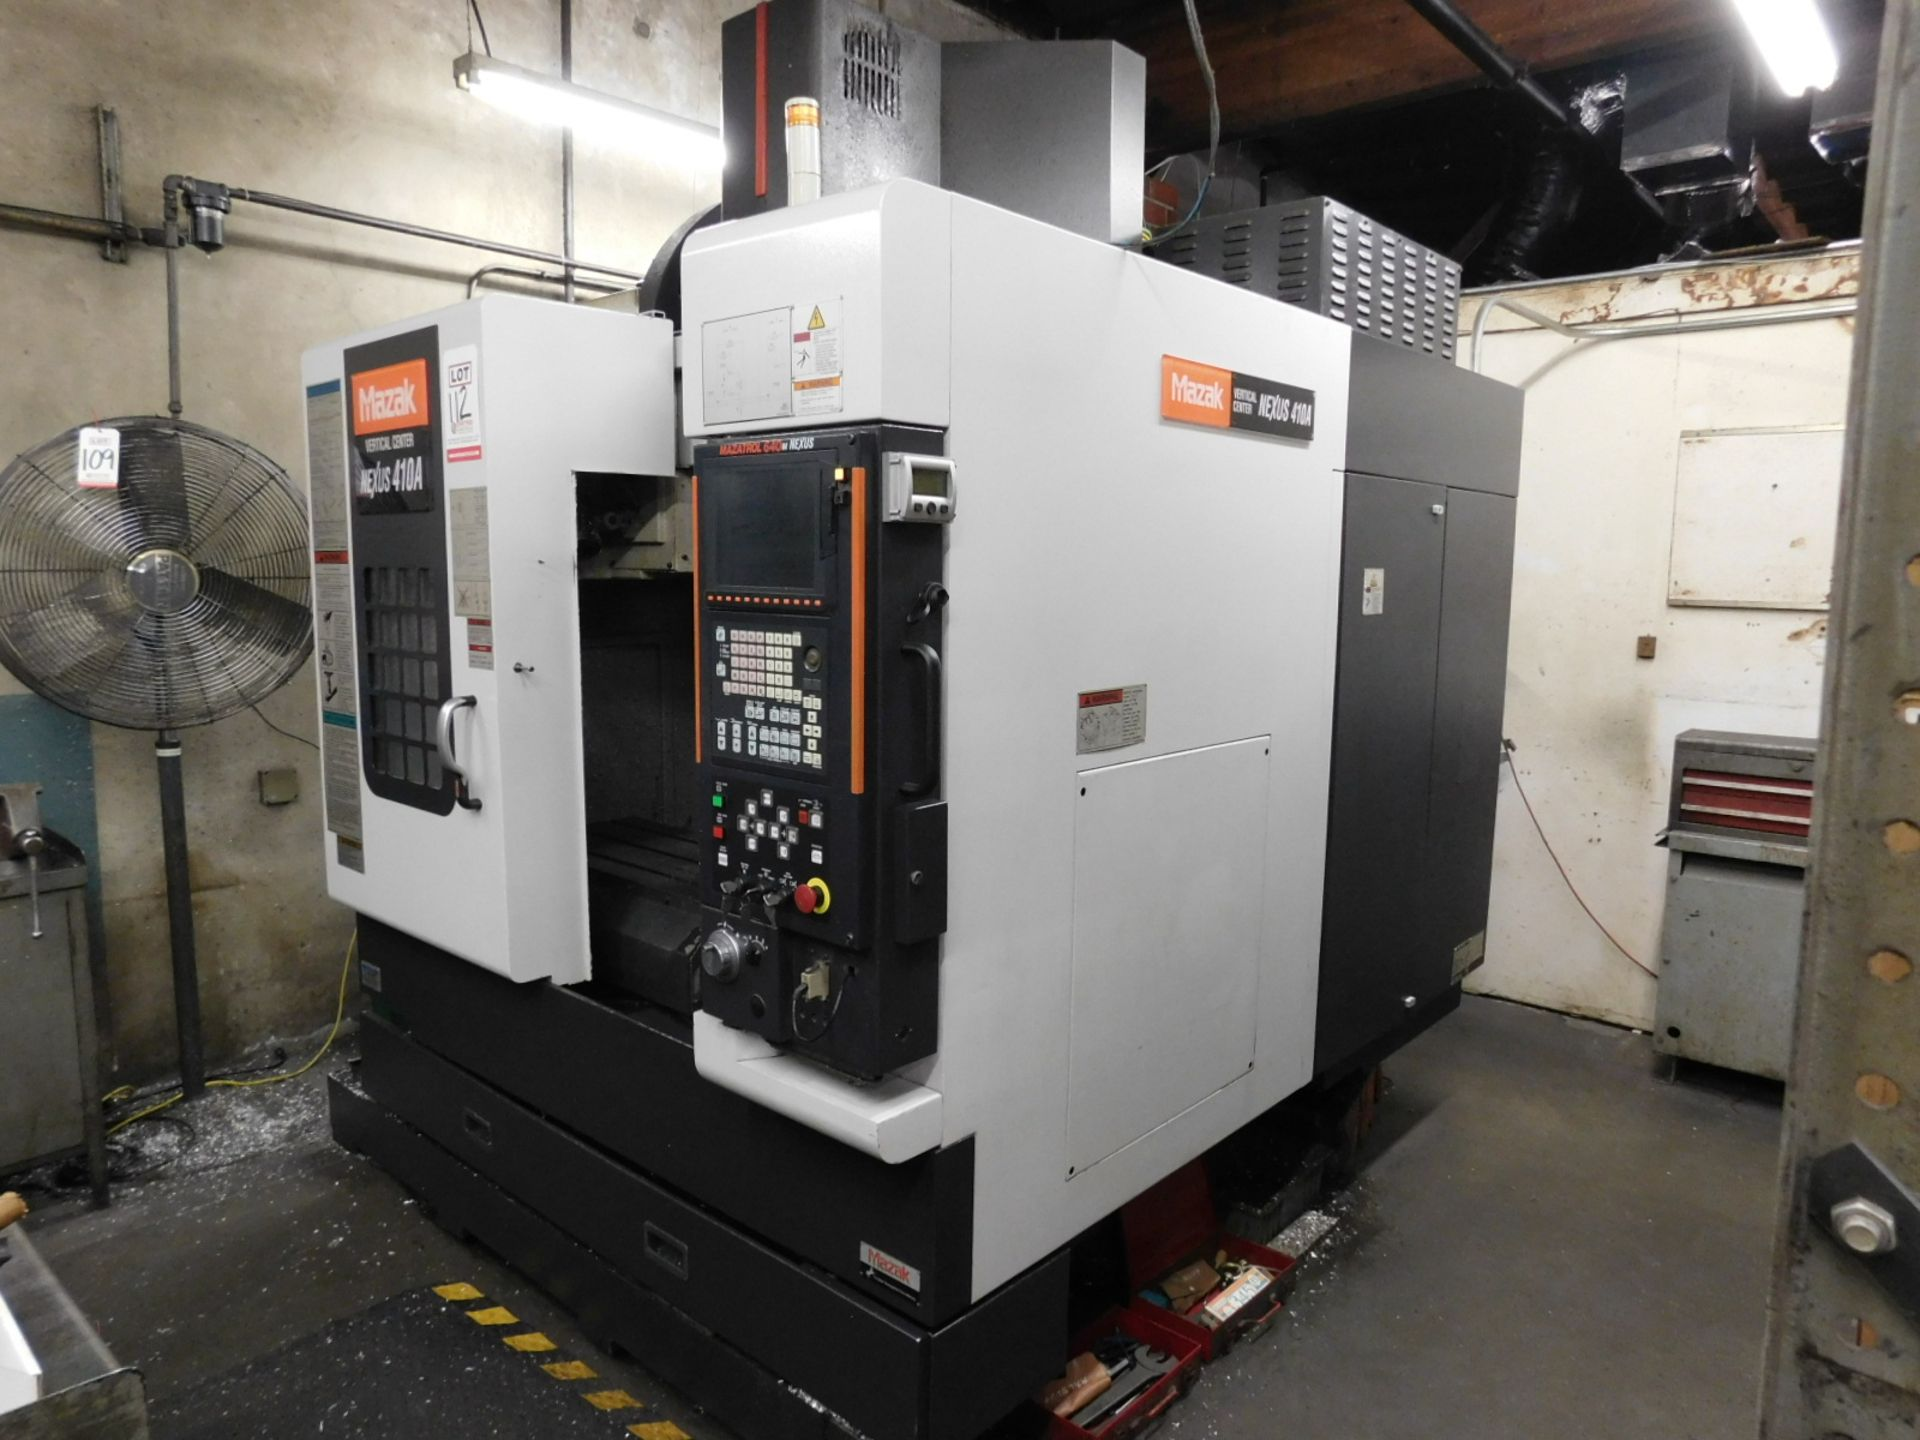 2005 MAZAK NEXUS VCN 410A CNC VERTICAL MACHINING CENTER, MAZATROL FUSION 640M NEXUS CNC CONTROL, XYZ - Image 5 of 15